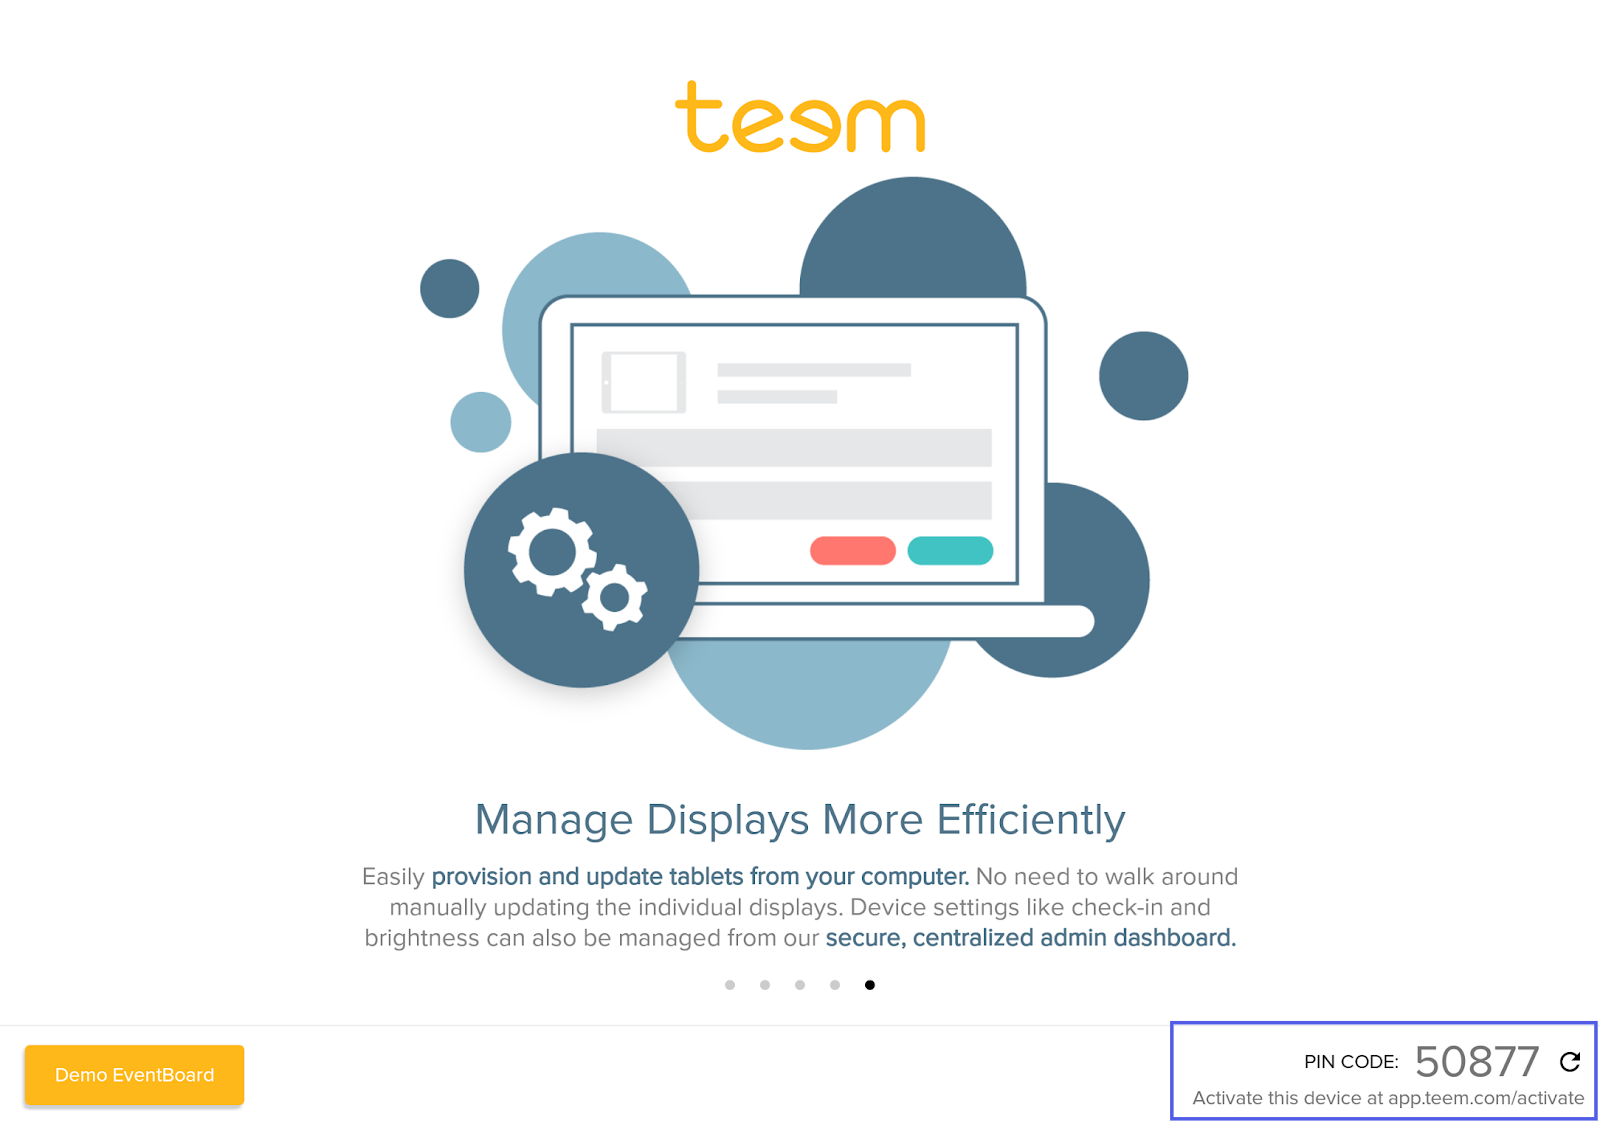 Teem App Splash Screen with Pin Code